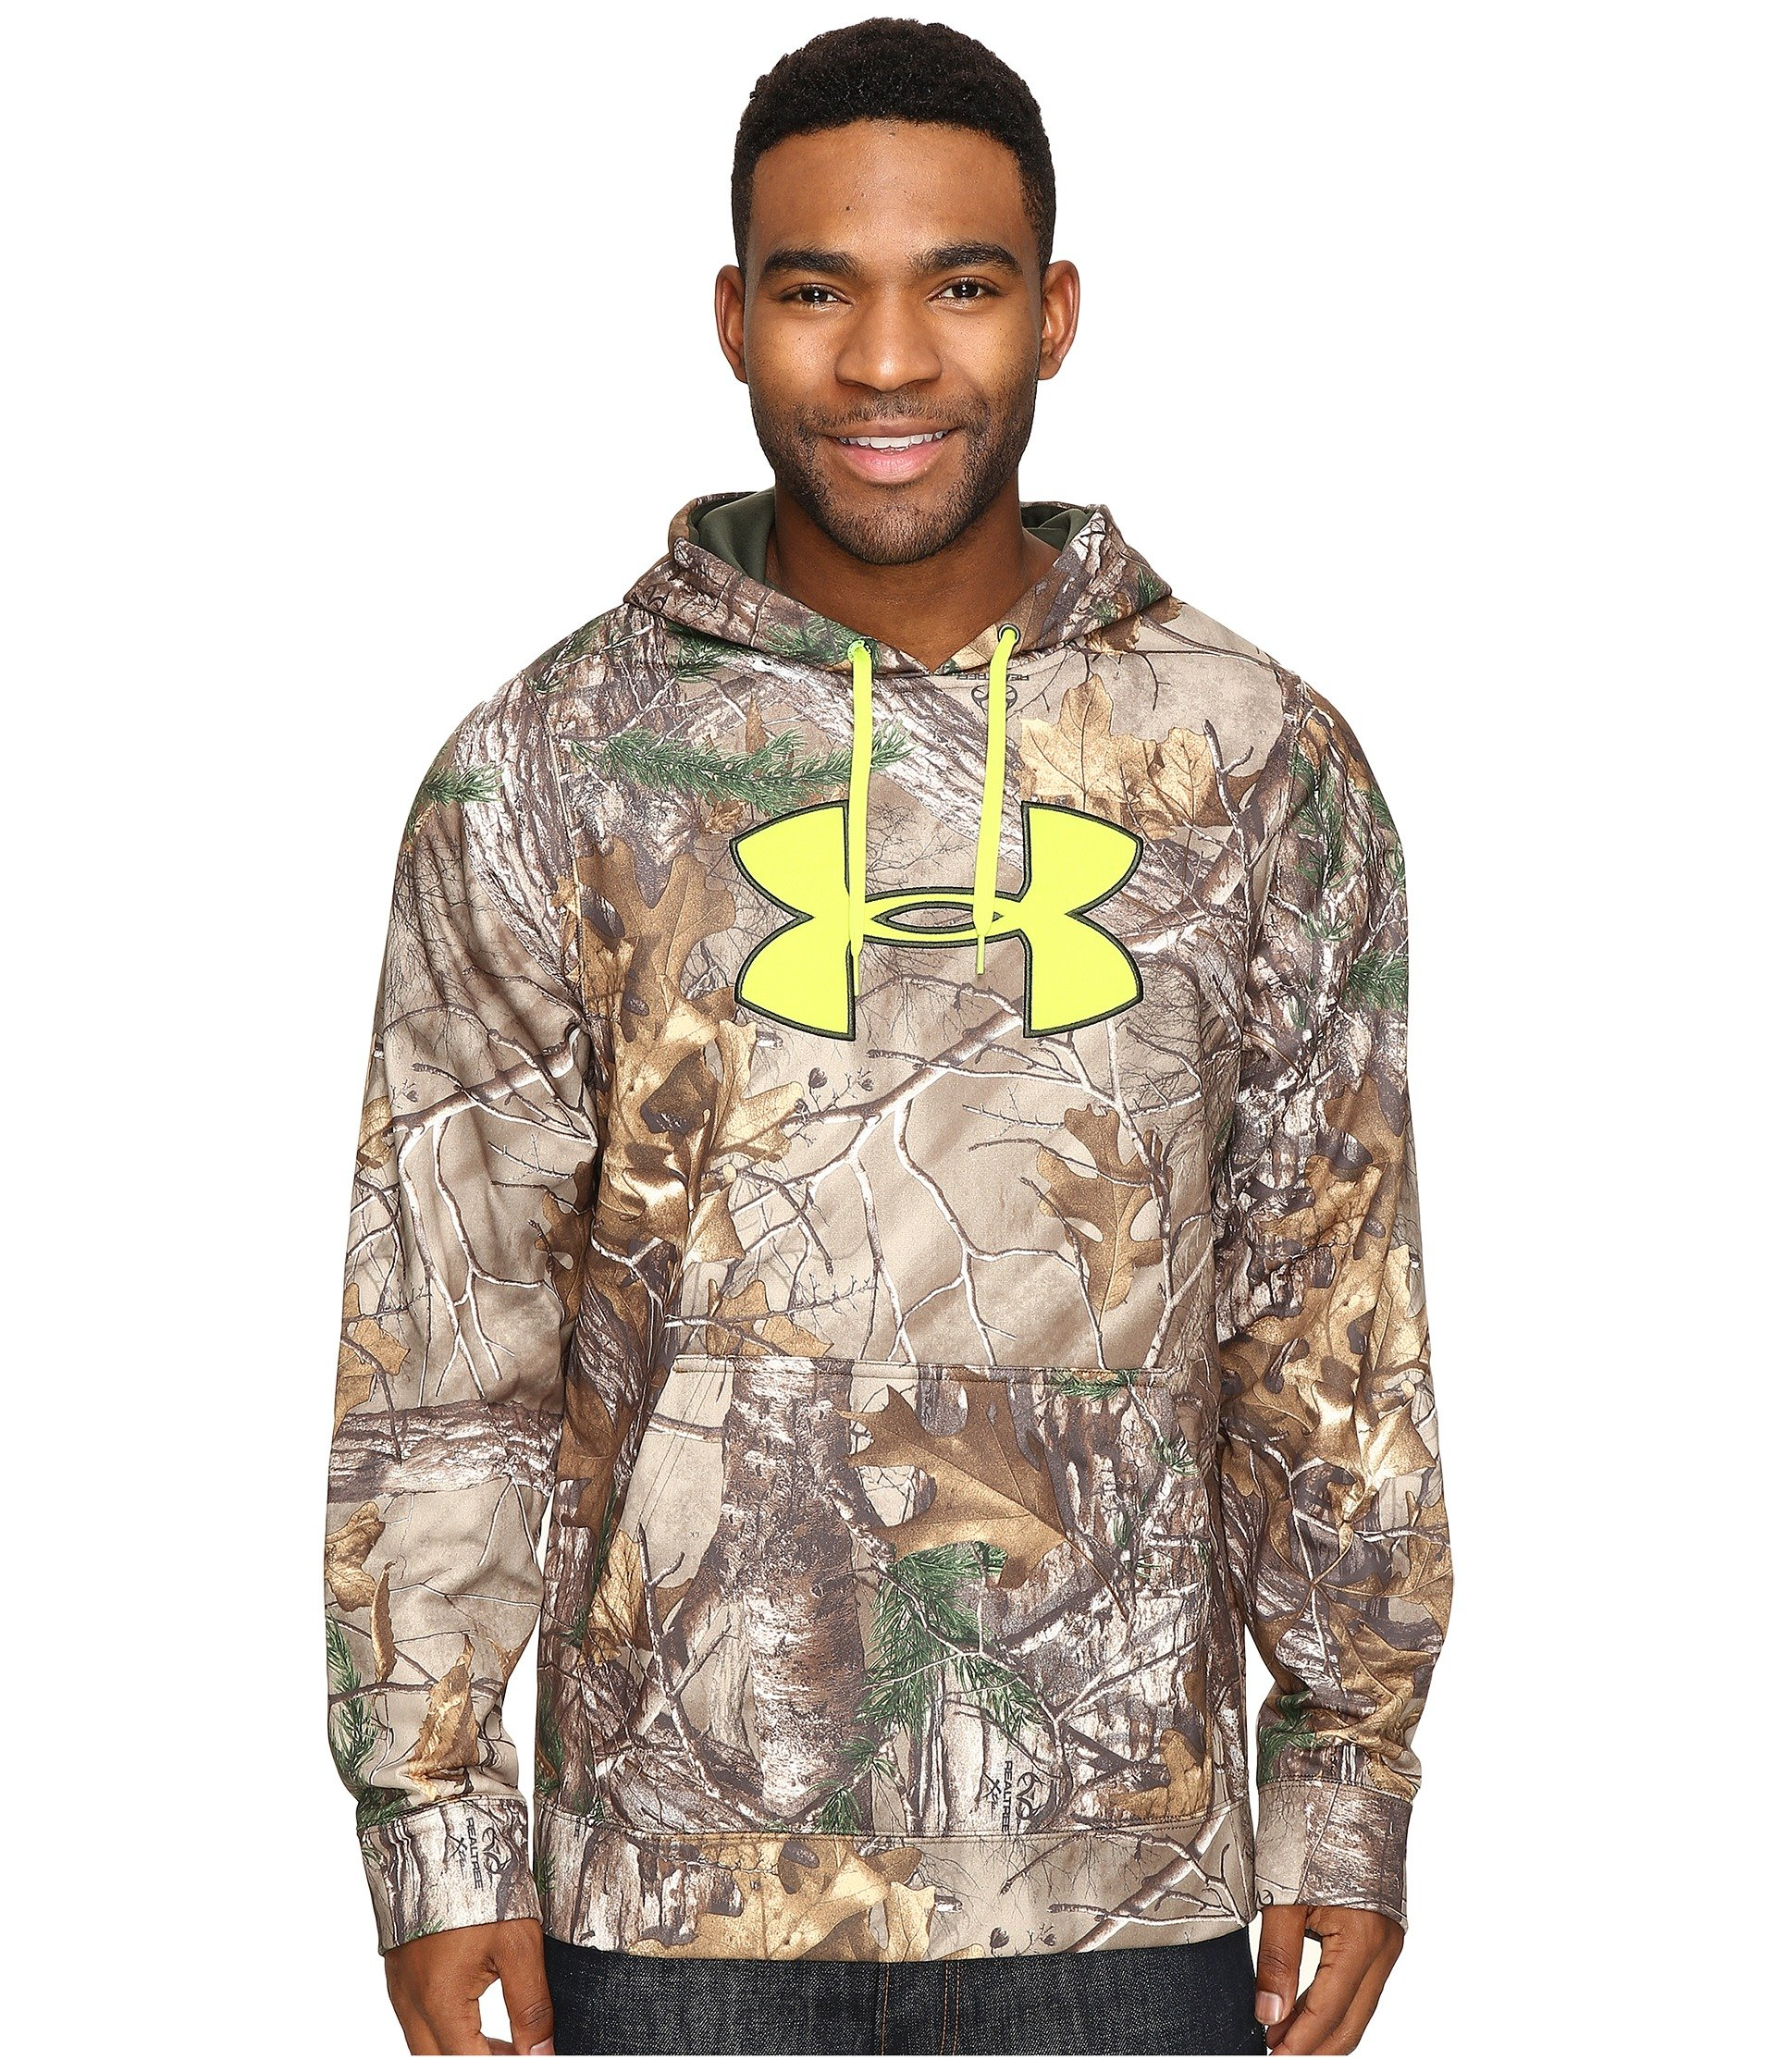 Under Armour Coldgear Scent Control Hoody - Men's Realtree AP - Xtra / Velocity Large by Under Armour